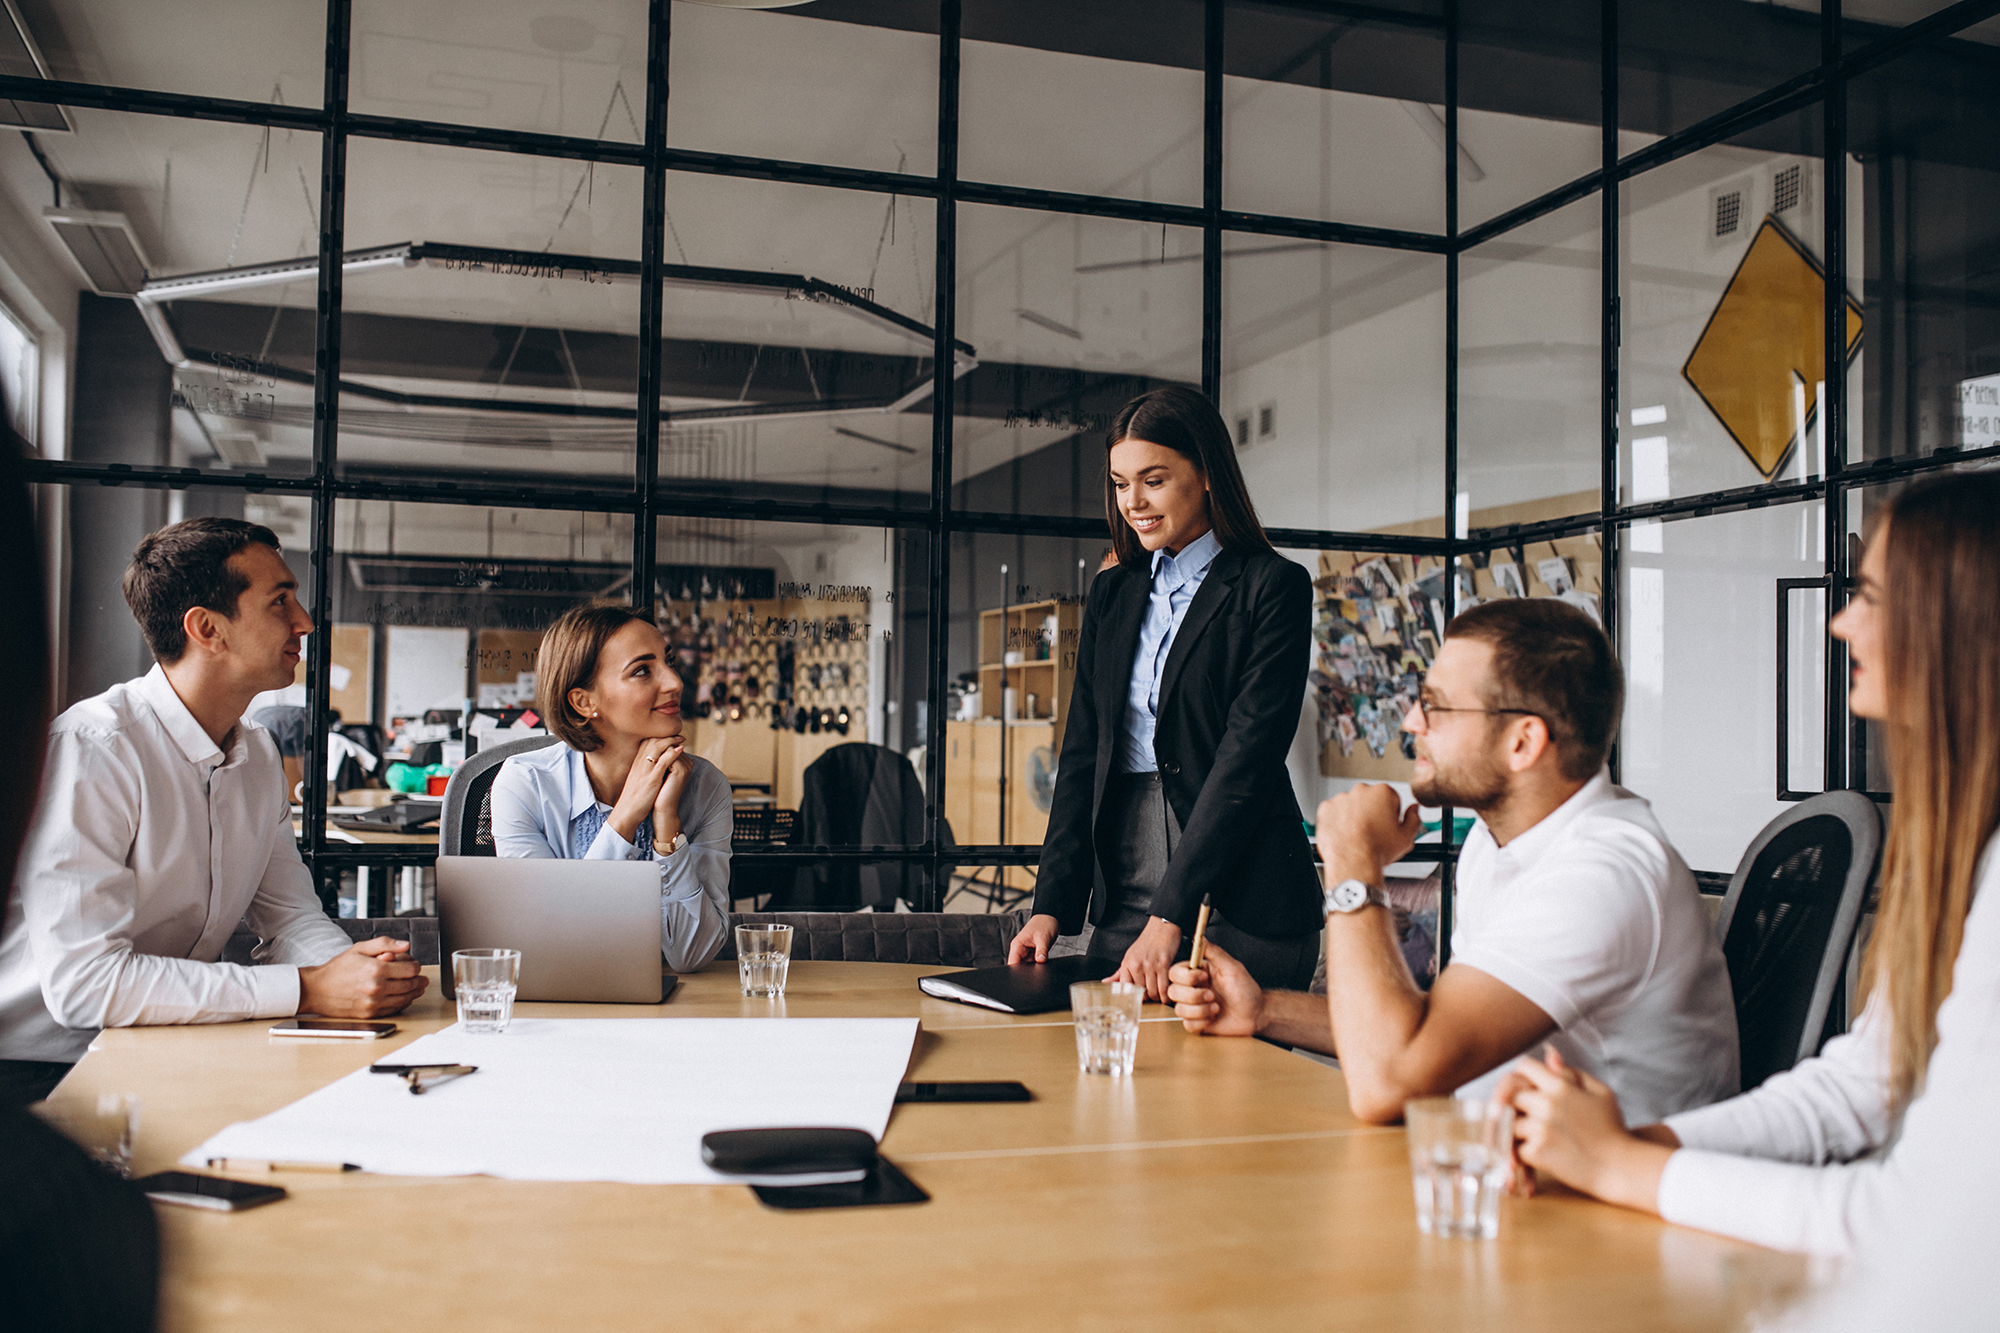 Companies Need To Invest In Their Team